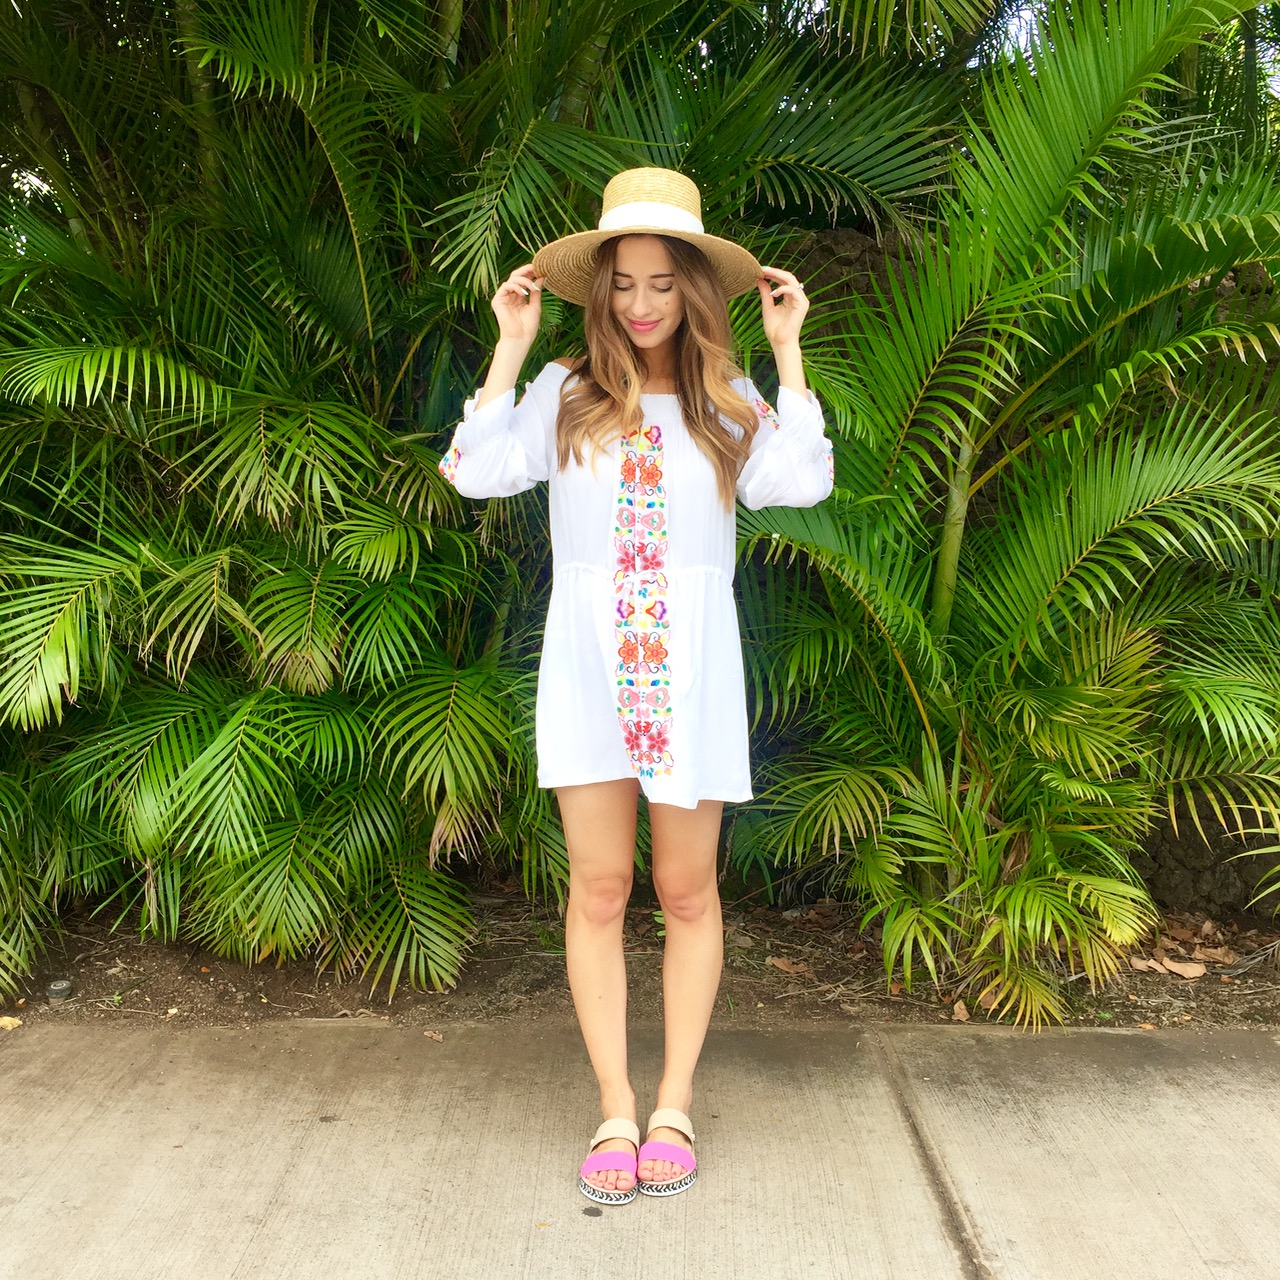 cute summer outfit inspiration: embroidered off the shoulder dress with a sun hat